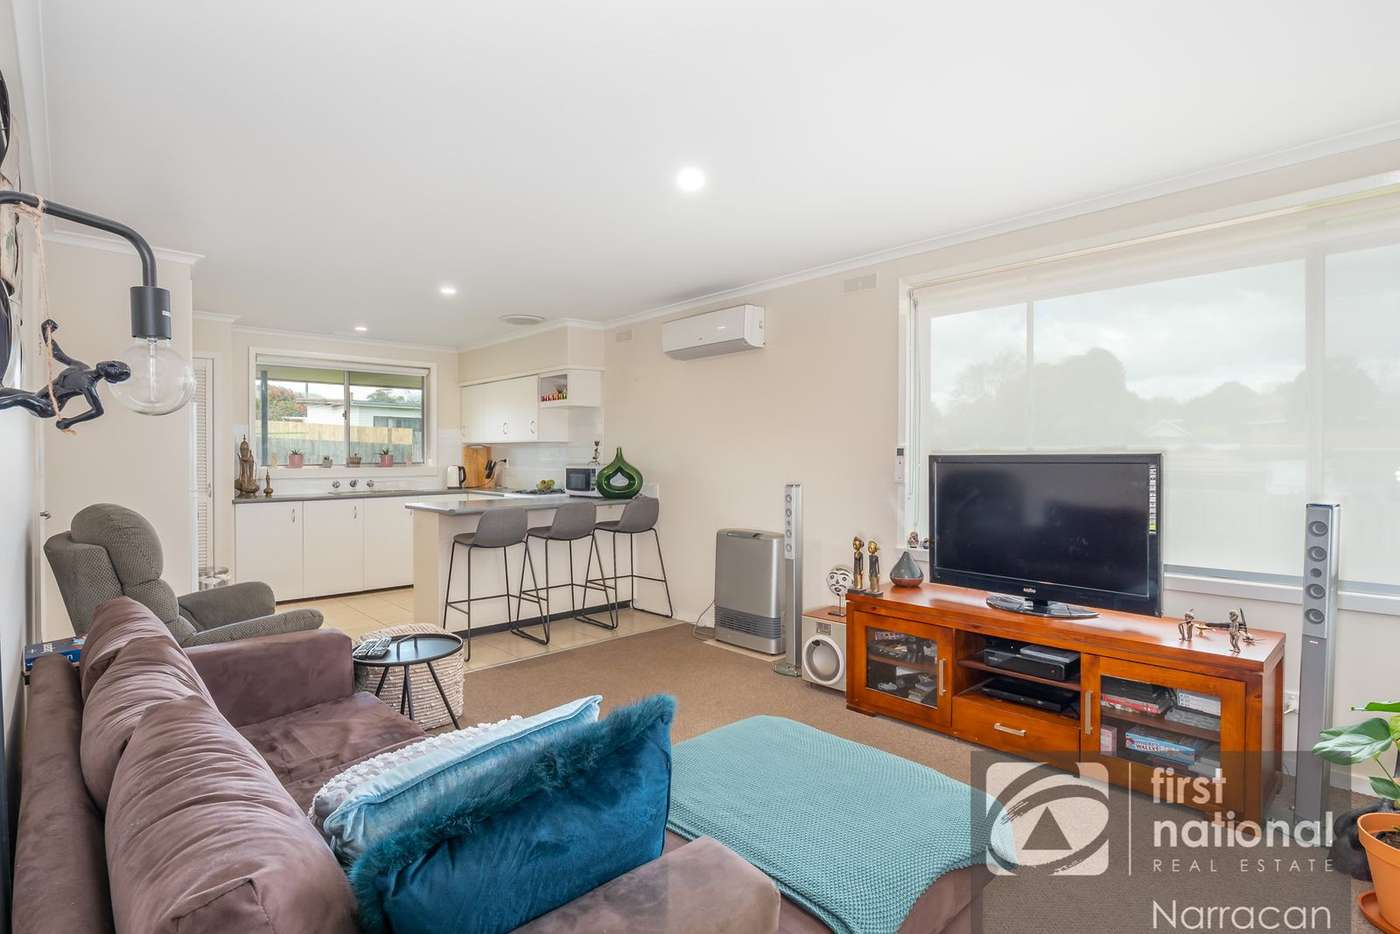 Seventh view of Homely blockOfUnits listing, 1&2/20 Guy Street, Newborough VIC 3825